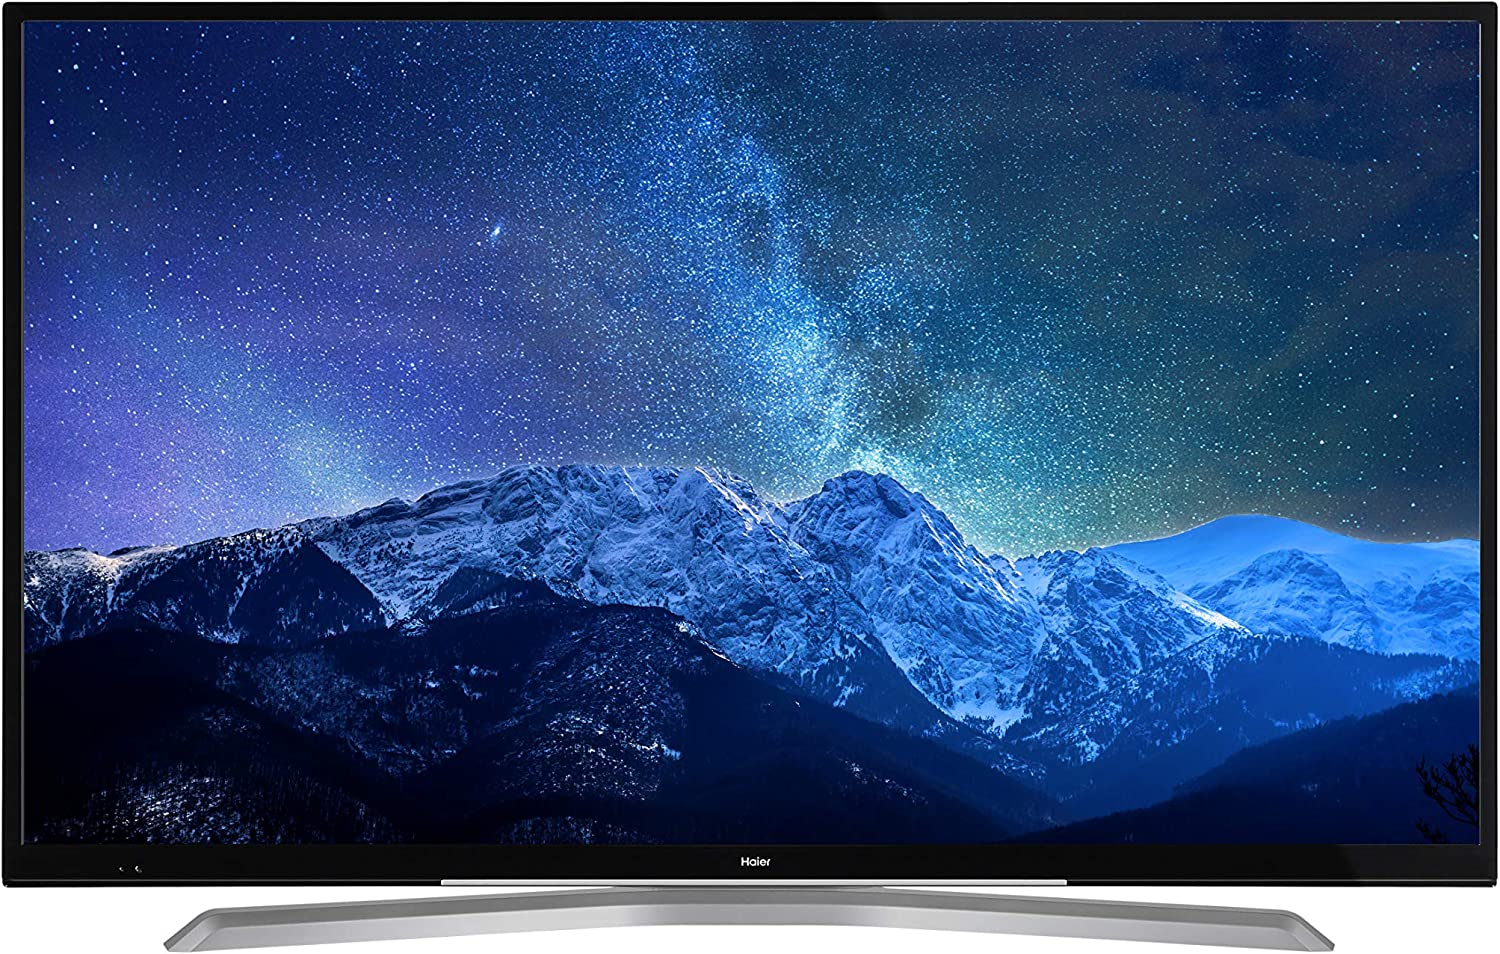 Haier - Televisor Haier LED de 50 pulgadas UHD 4K Smart TV: Amazon.es: Electrónica